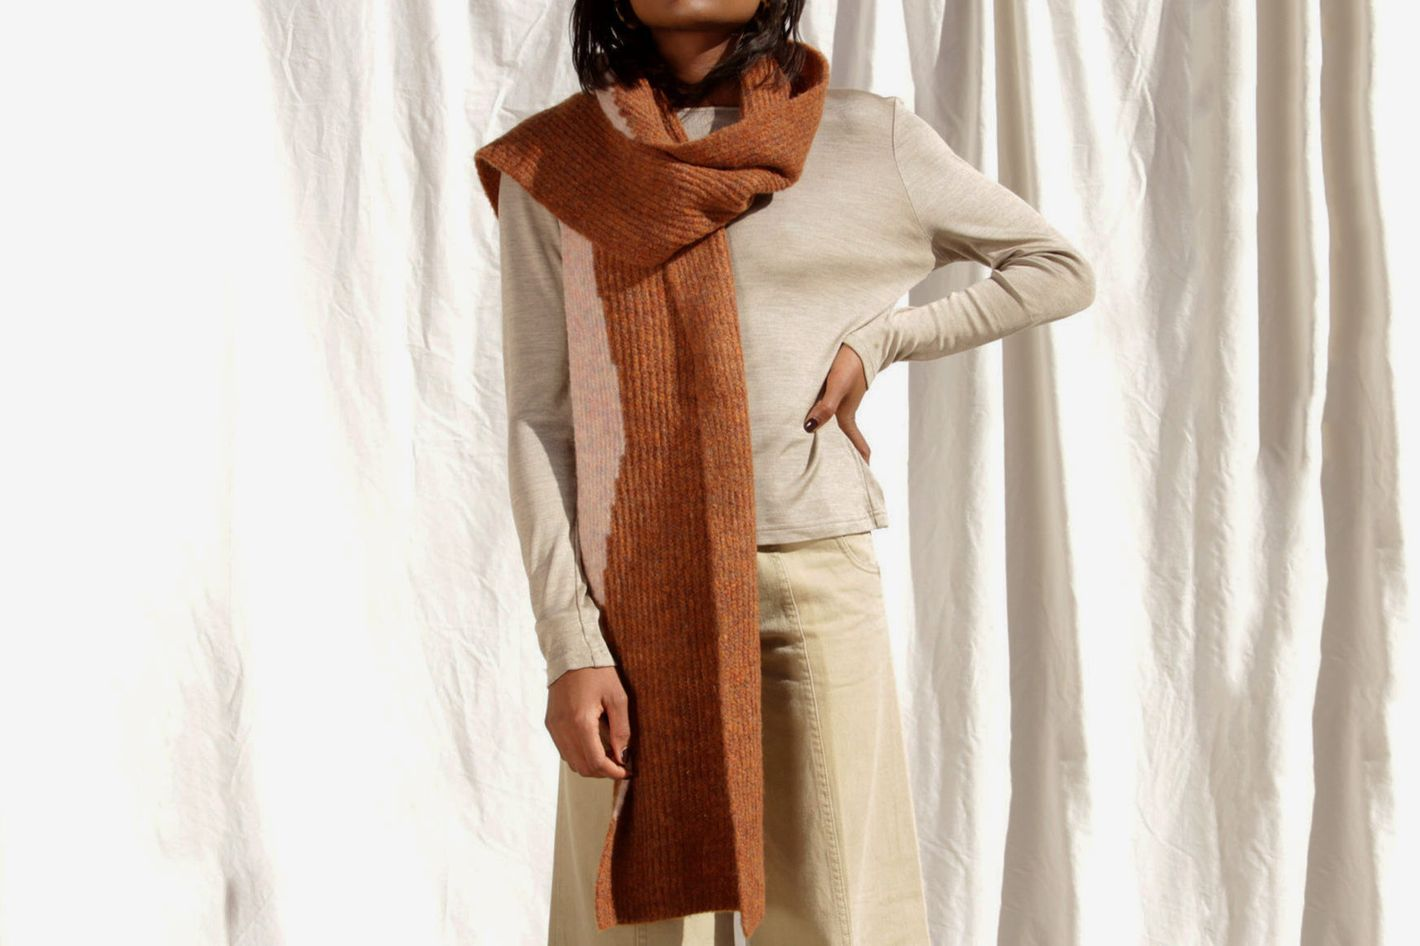 5c279a189e69 15 Best Scarves for Women to Give as Gifts 2018